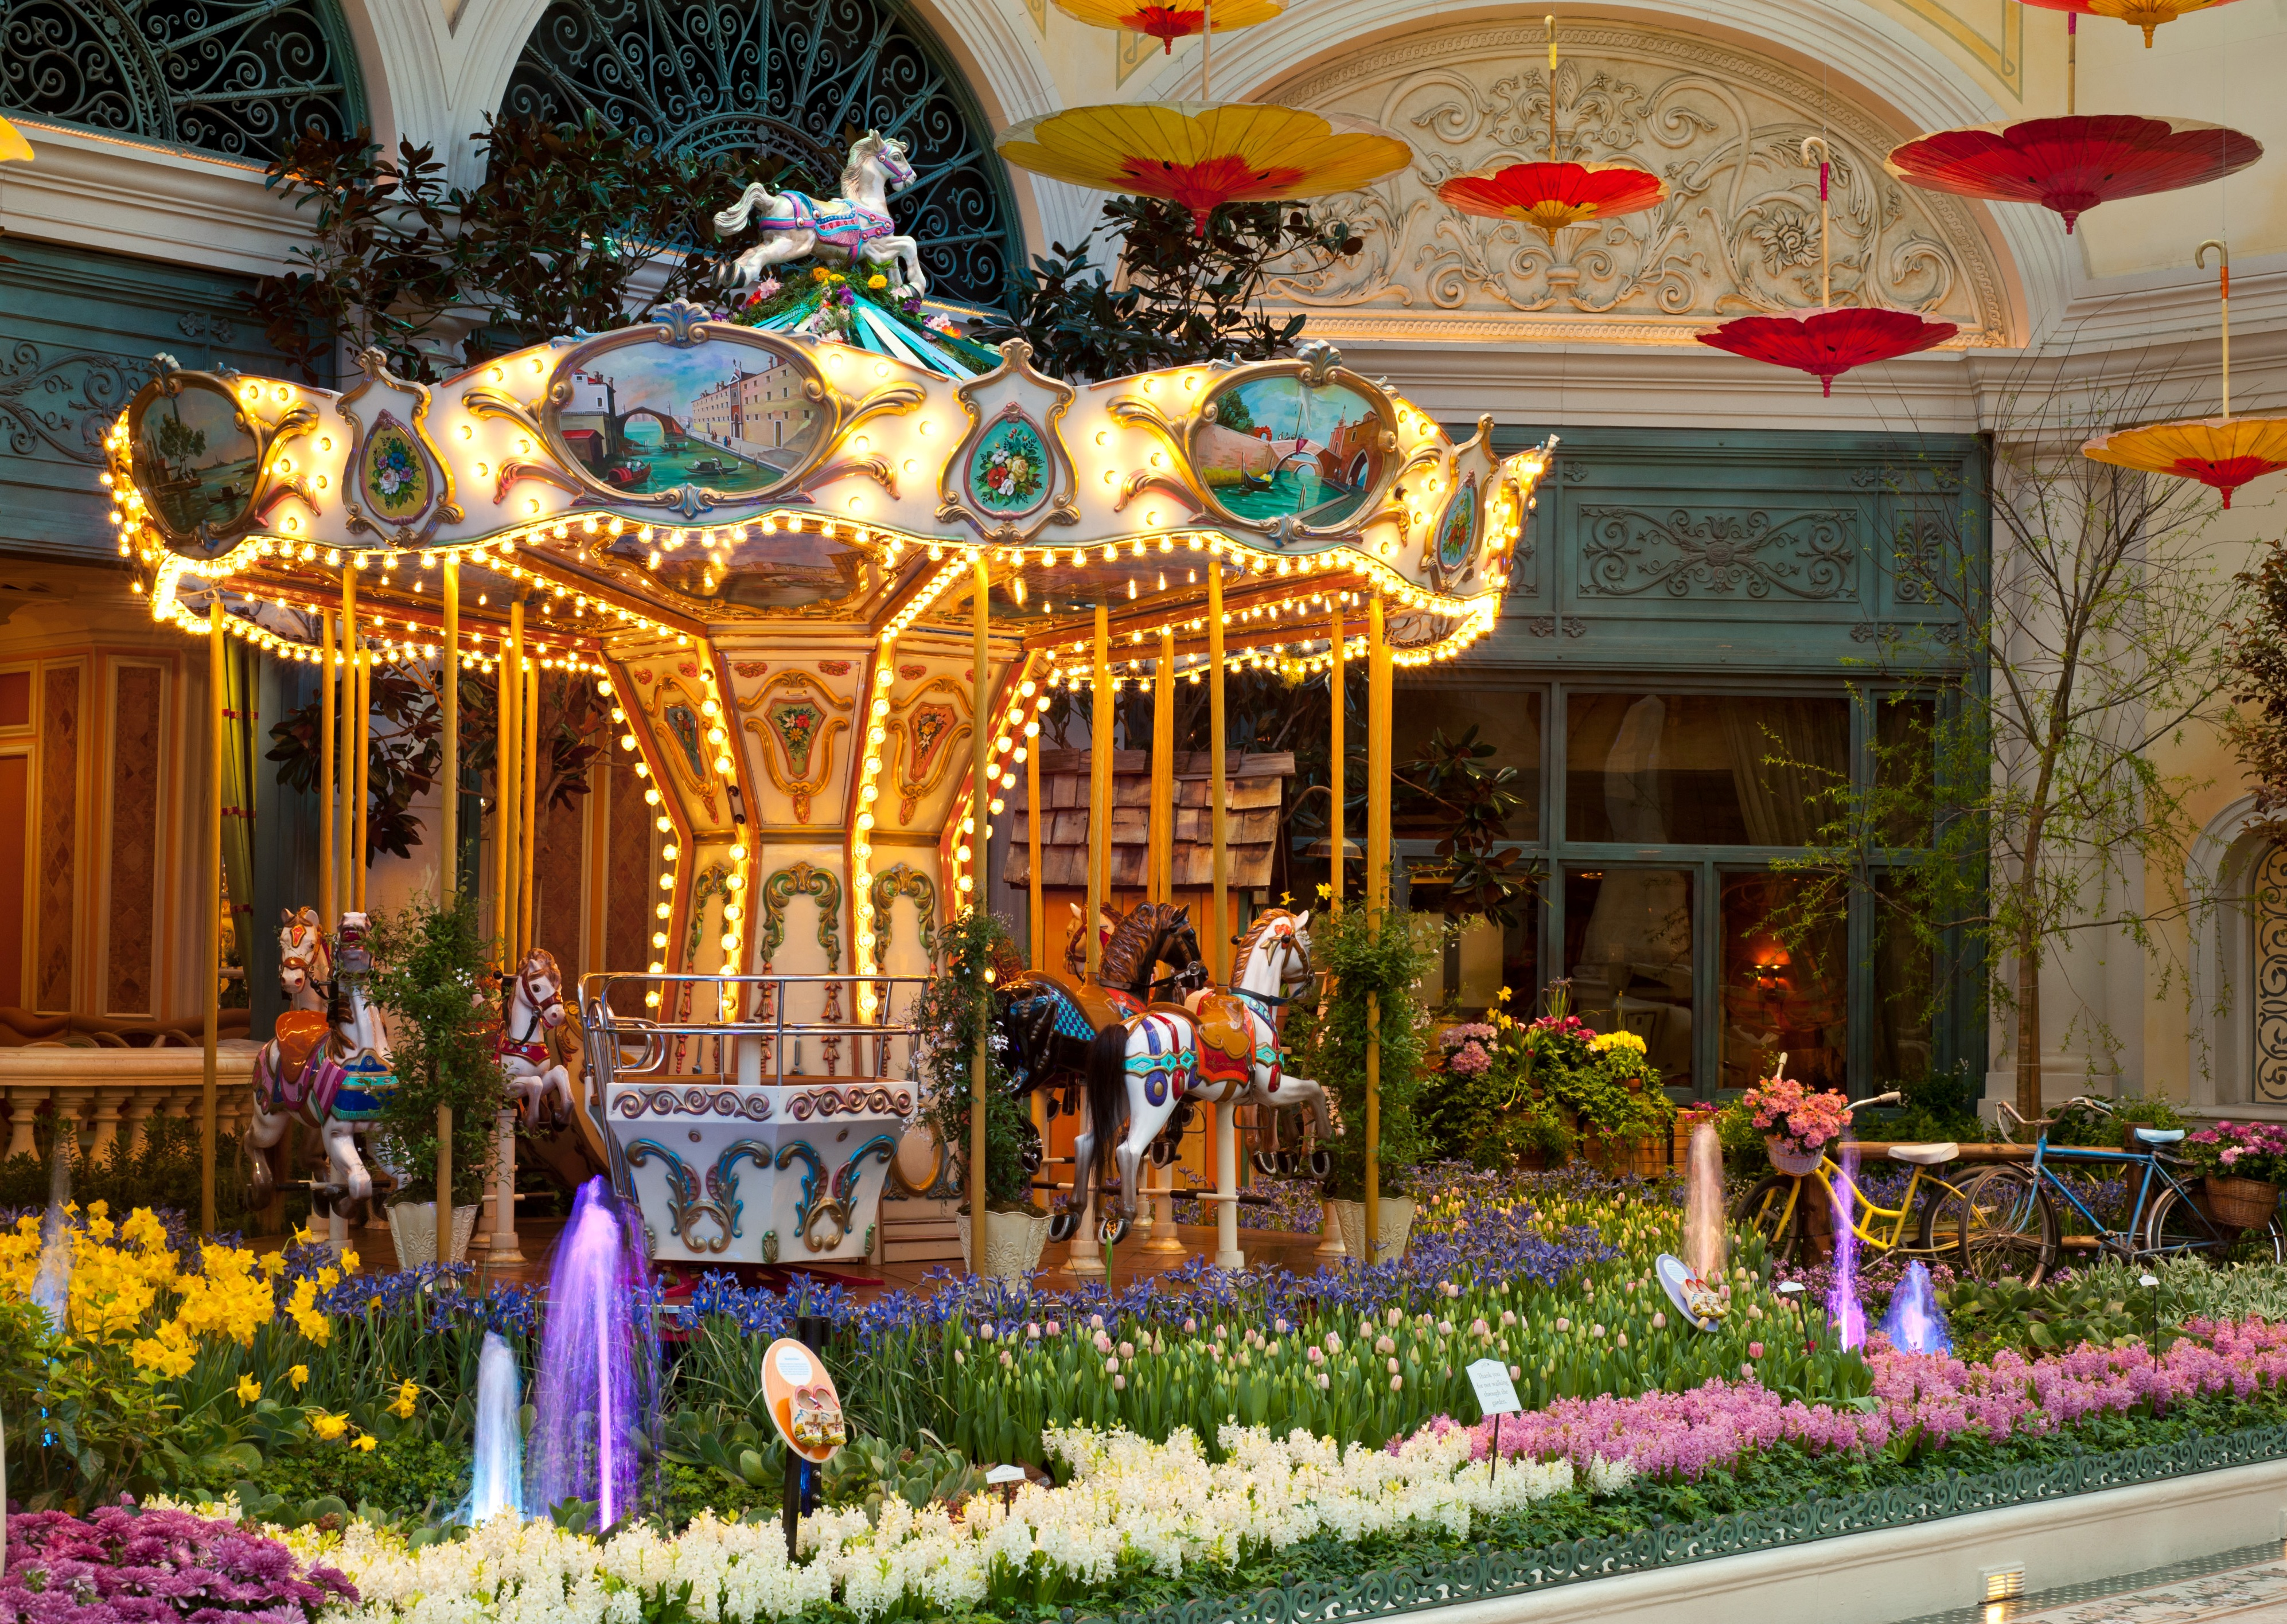 Spring at Bellagio's Conservatory